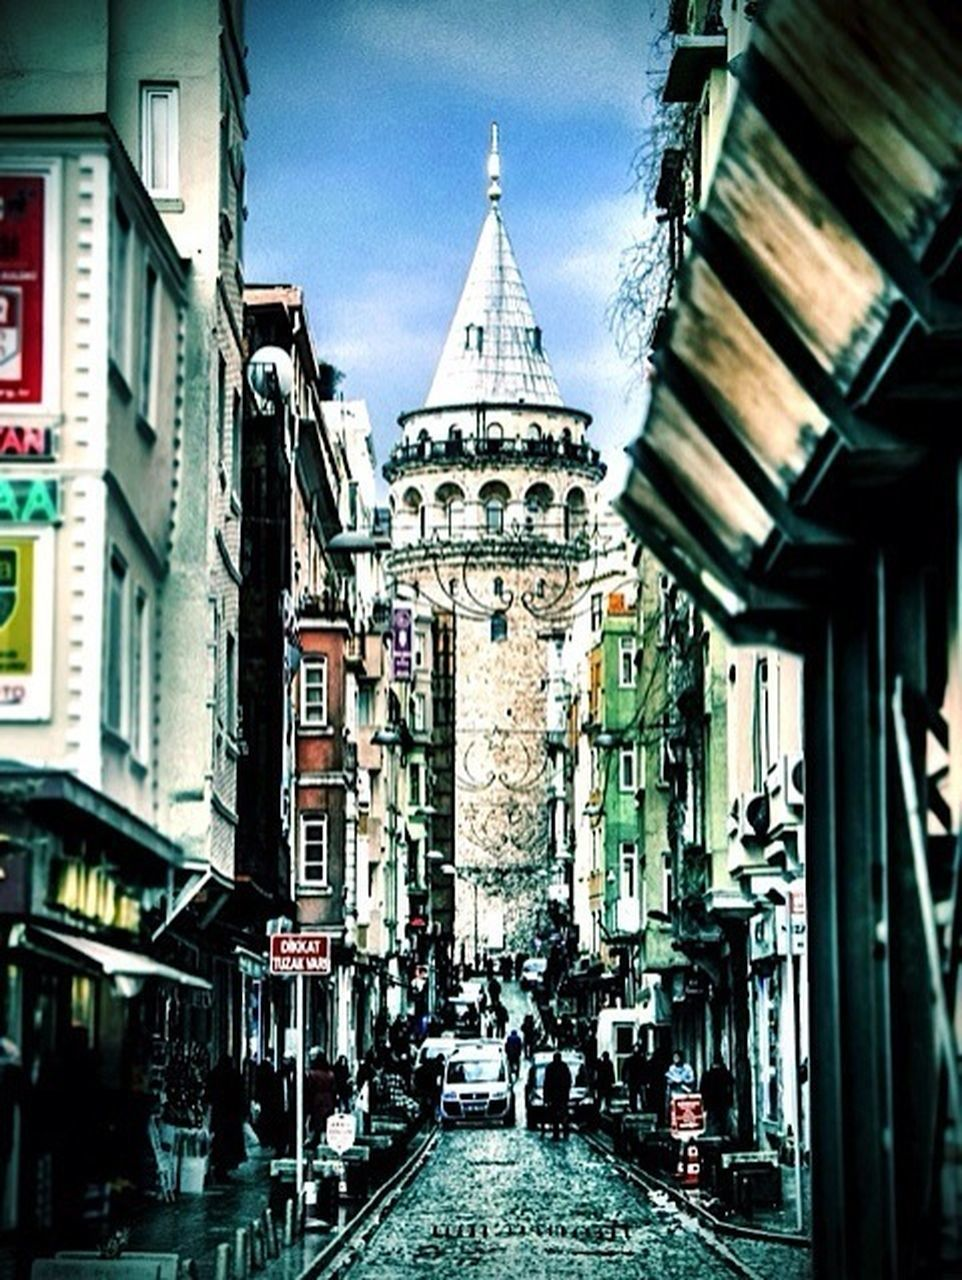 Hanging Out Streetphotography Taking Pictures Historical Building Taking Photos Enjoying The View Enjoying Life Galata Kulesi Eye4photography  Hot_shotz